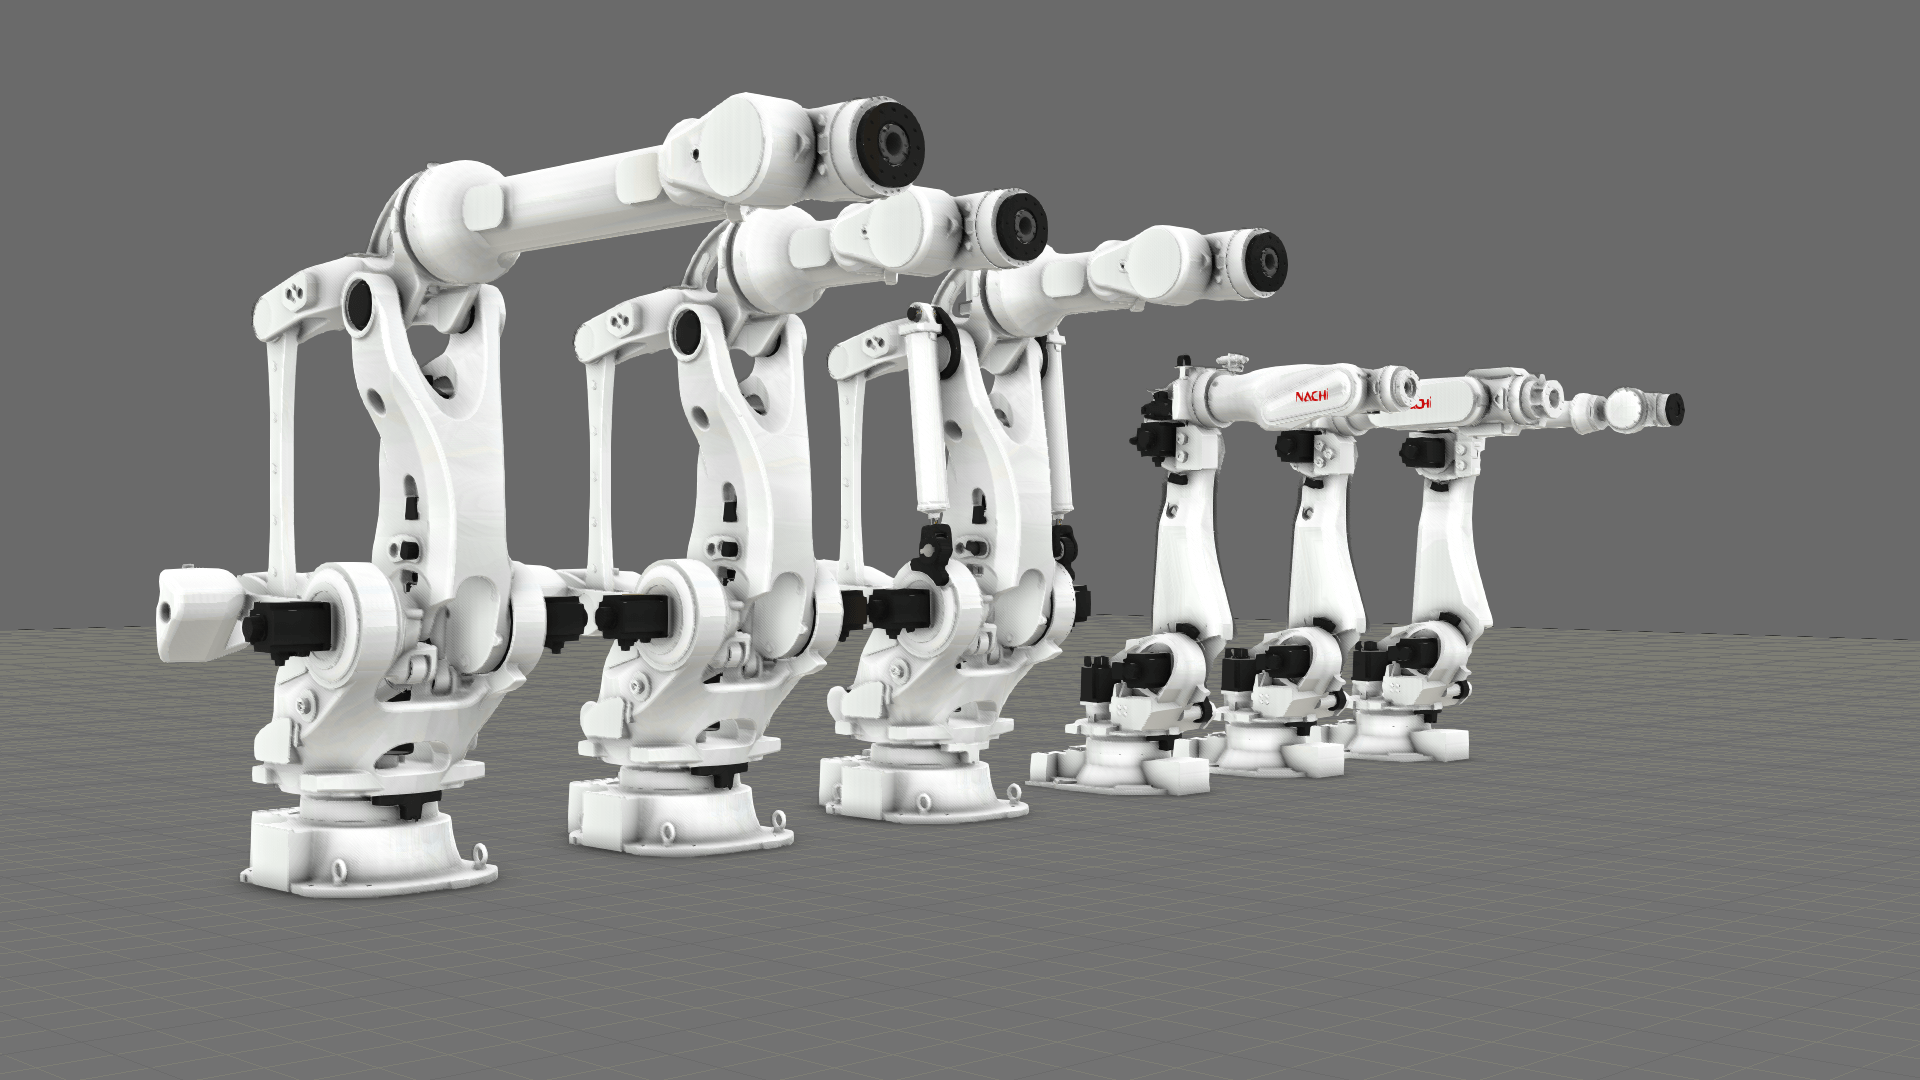 Collection of new Nachi robots in eCatalog